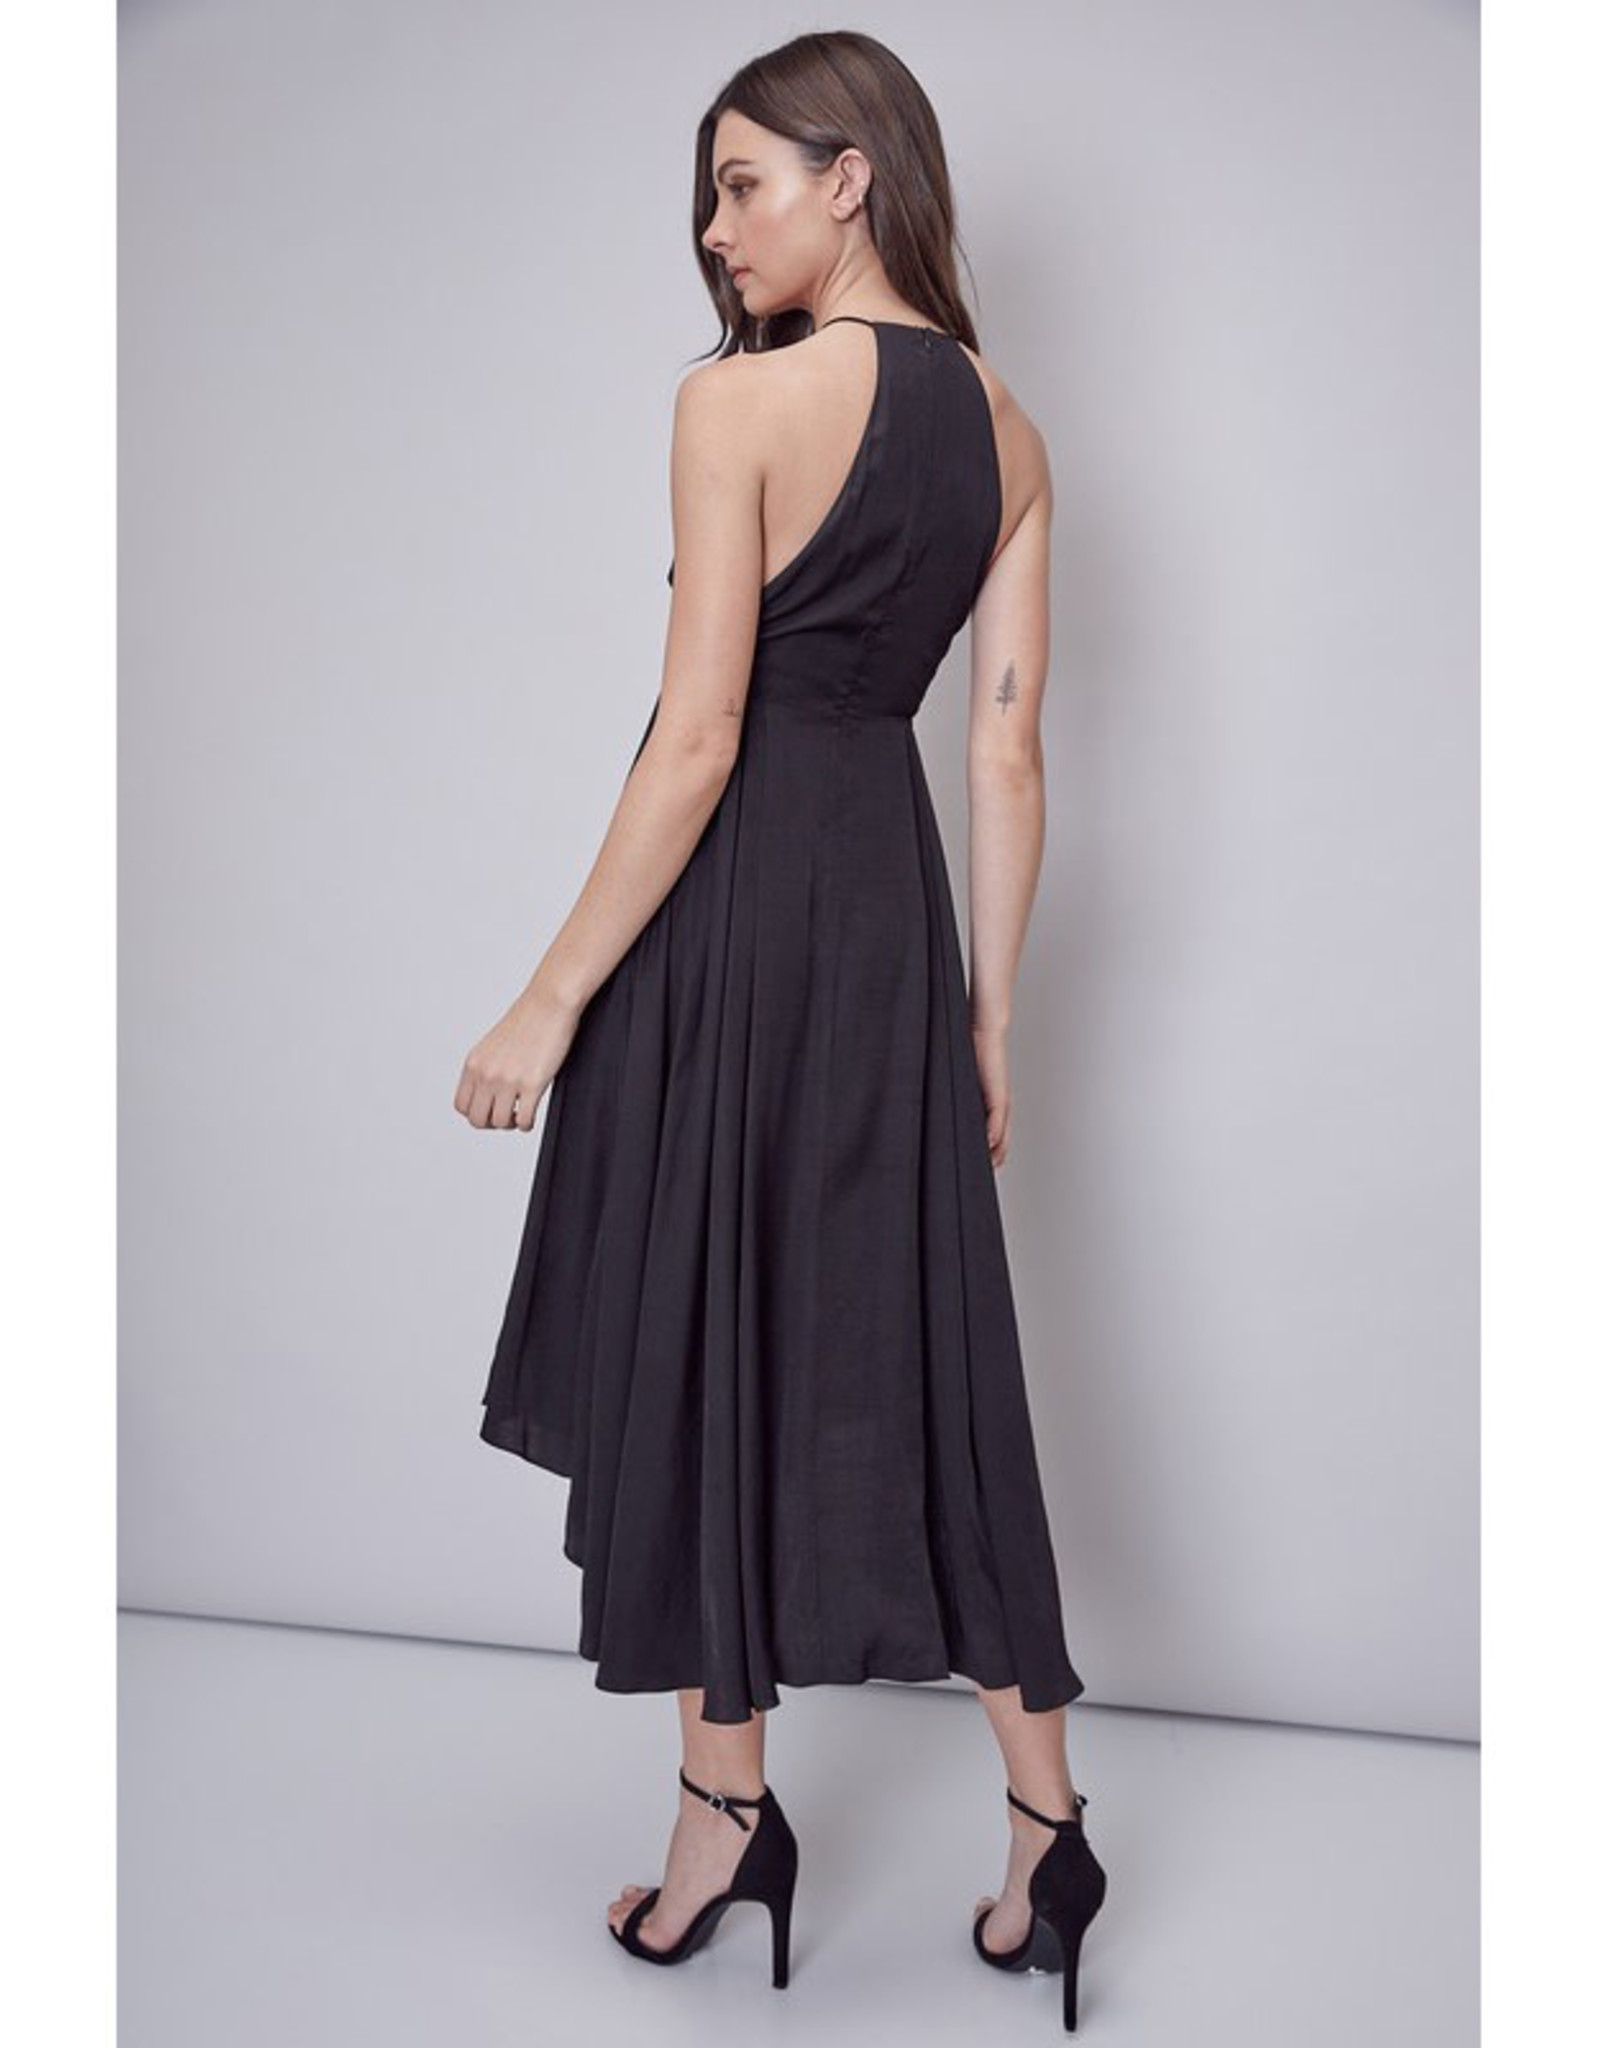 Black Strappy Midi Dress